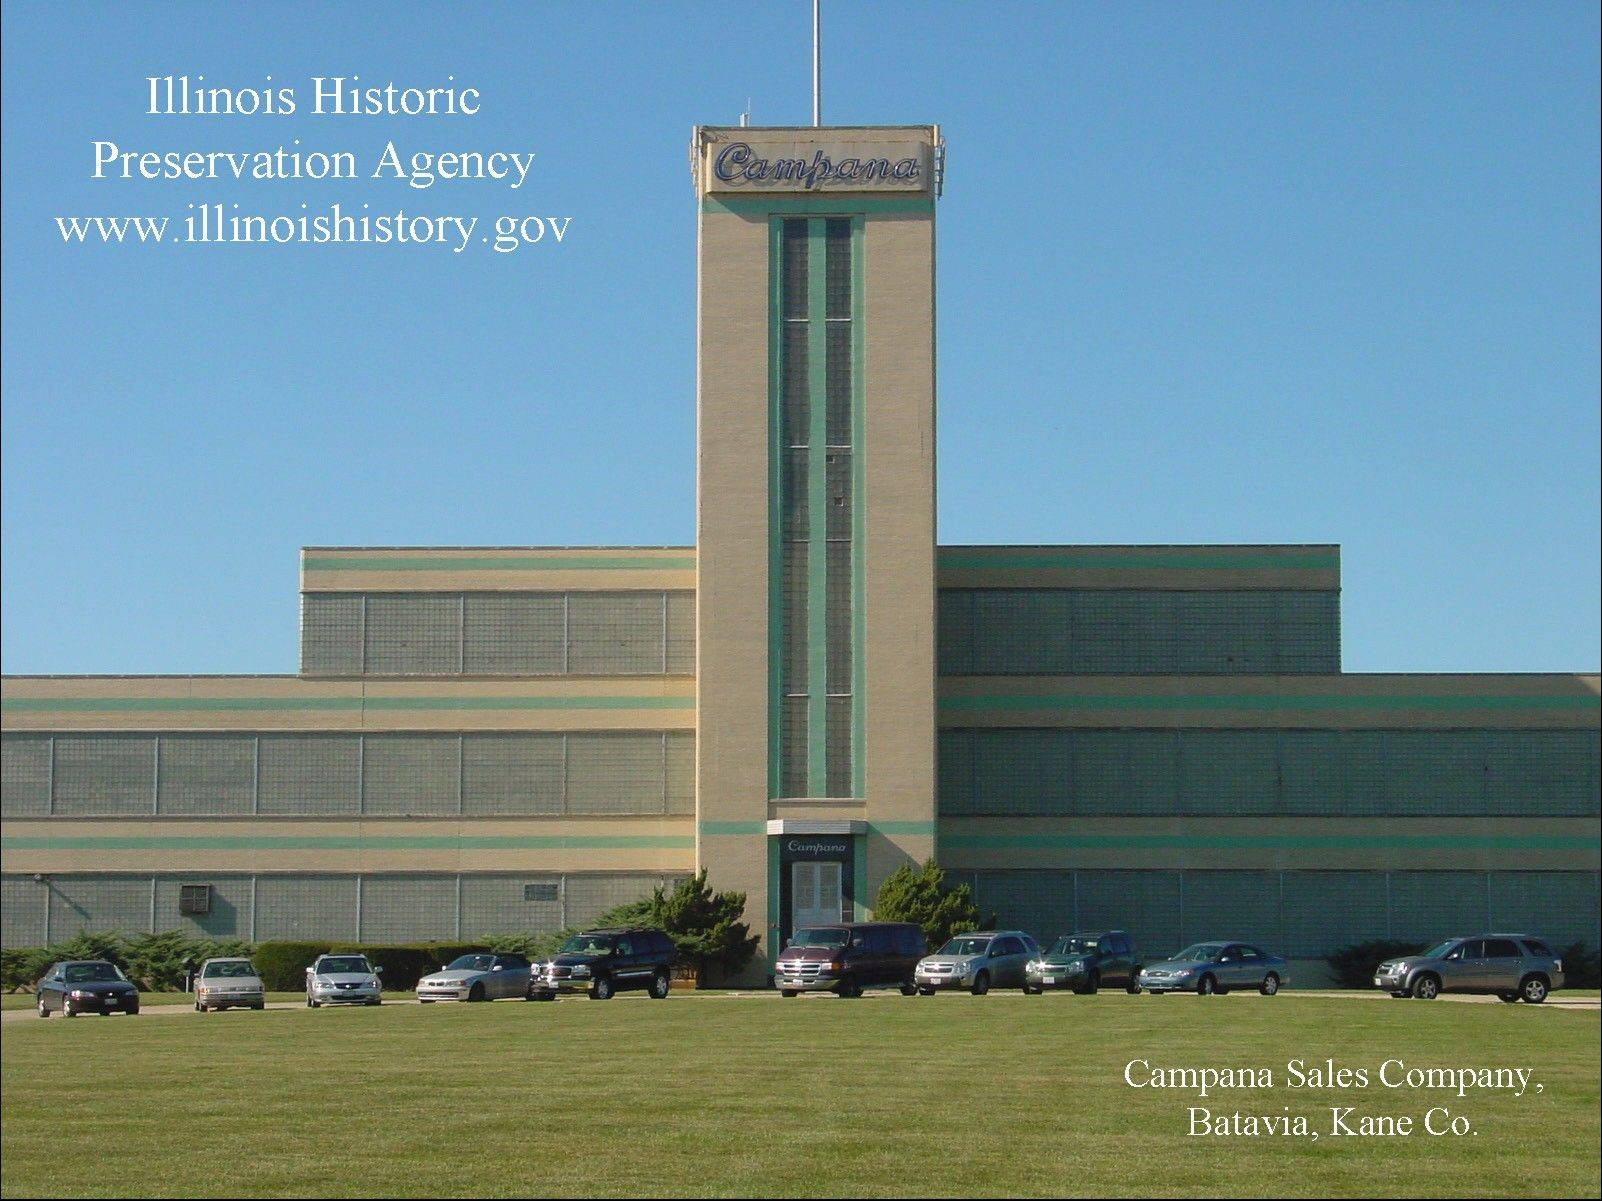 The Campana factory in Batava is among the architectural images available in the new screensaver launched by the Illinois Historic Preservation Agency.